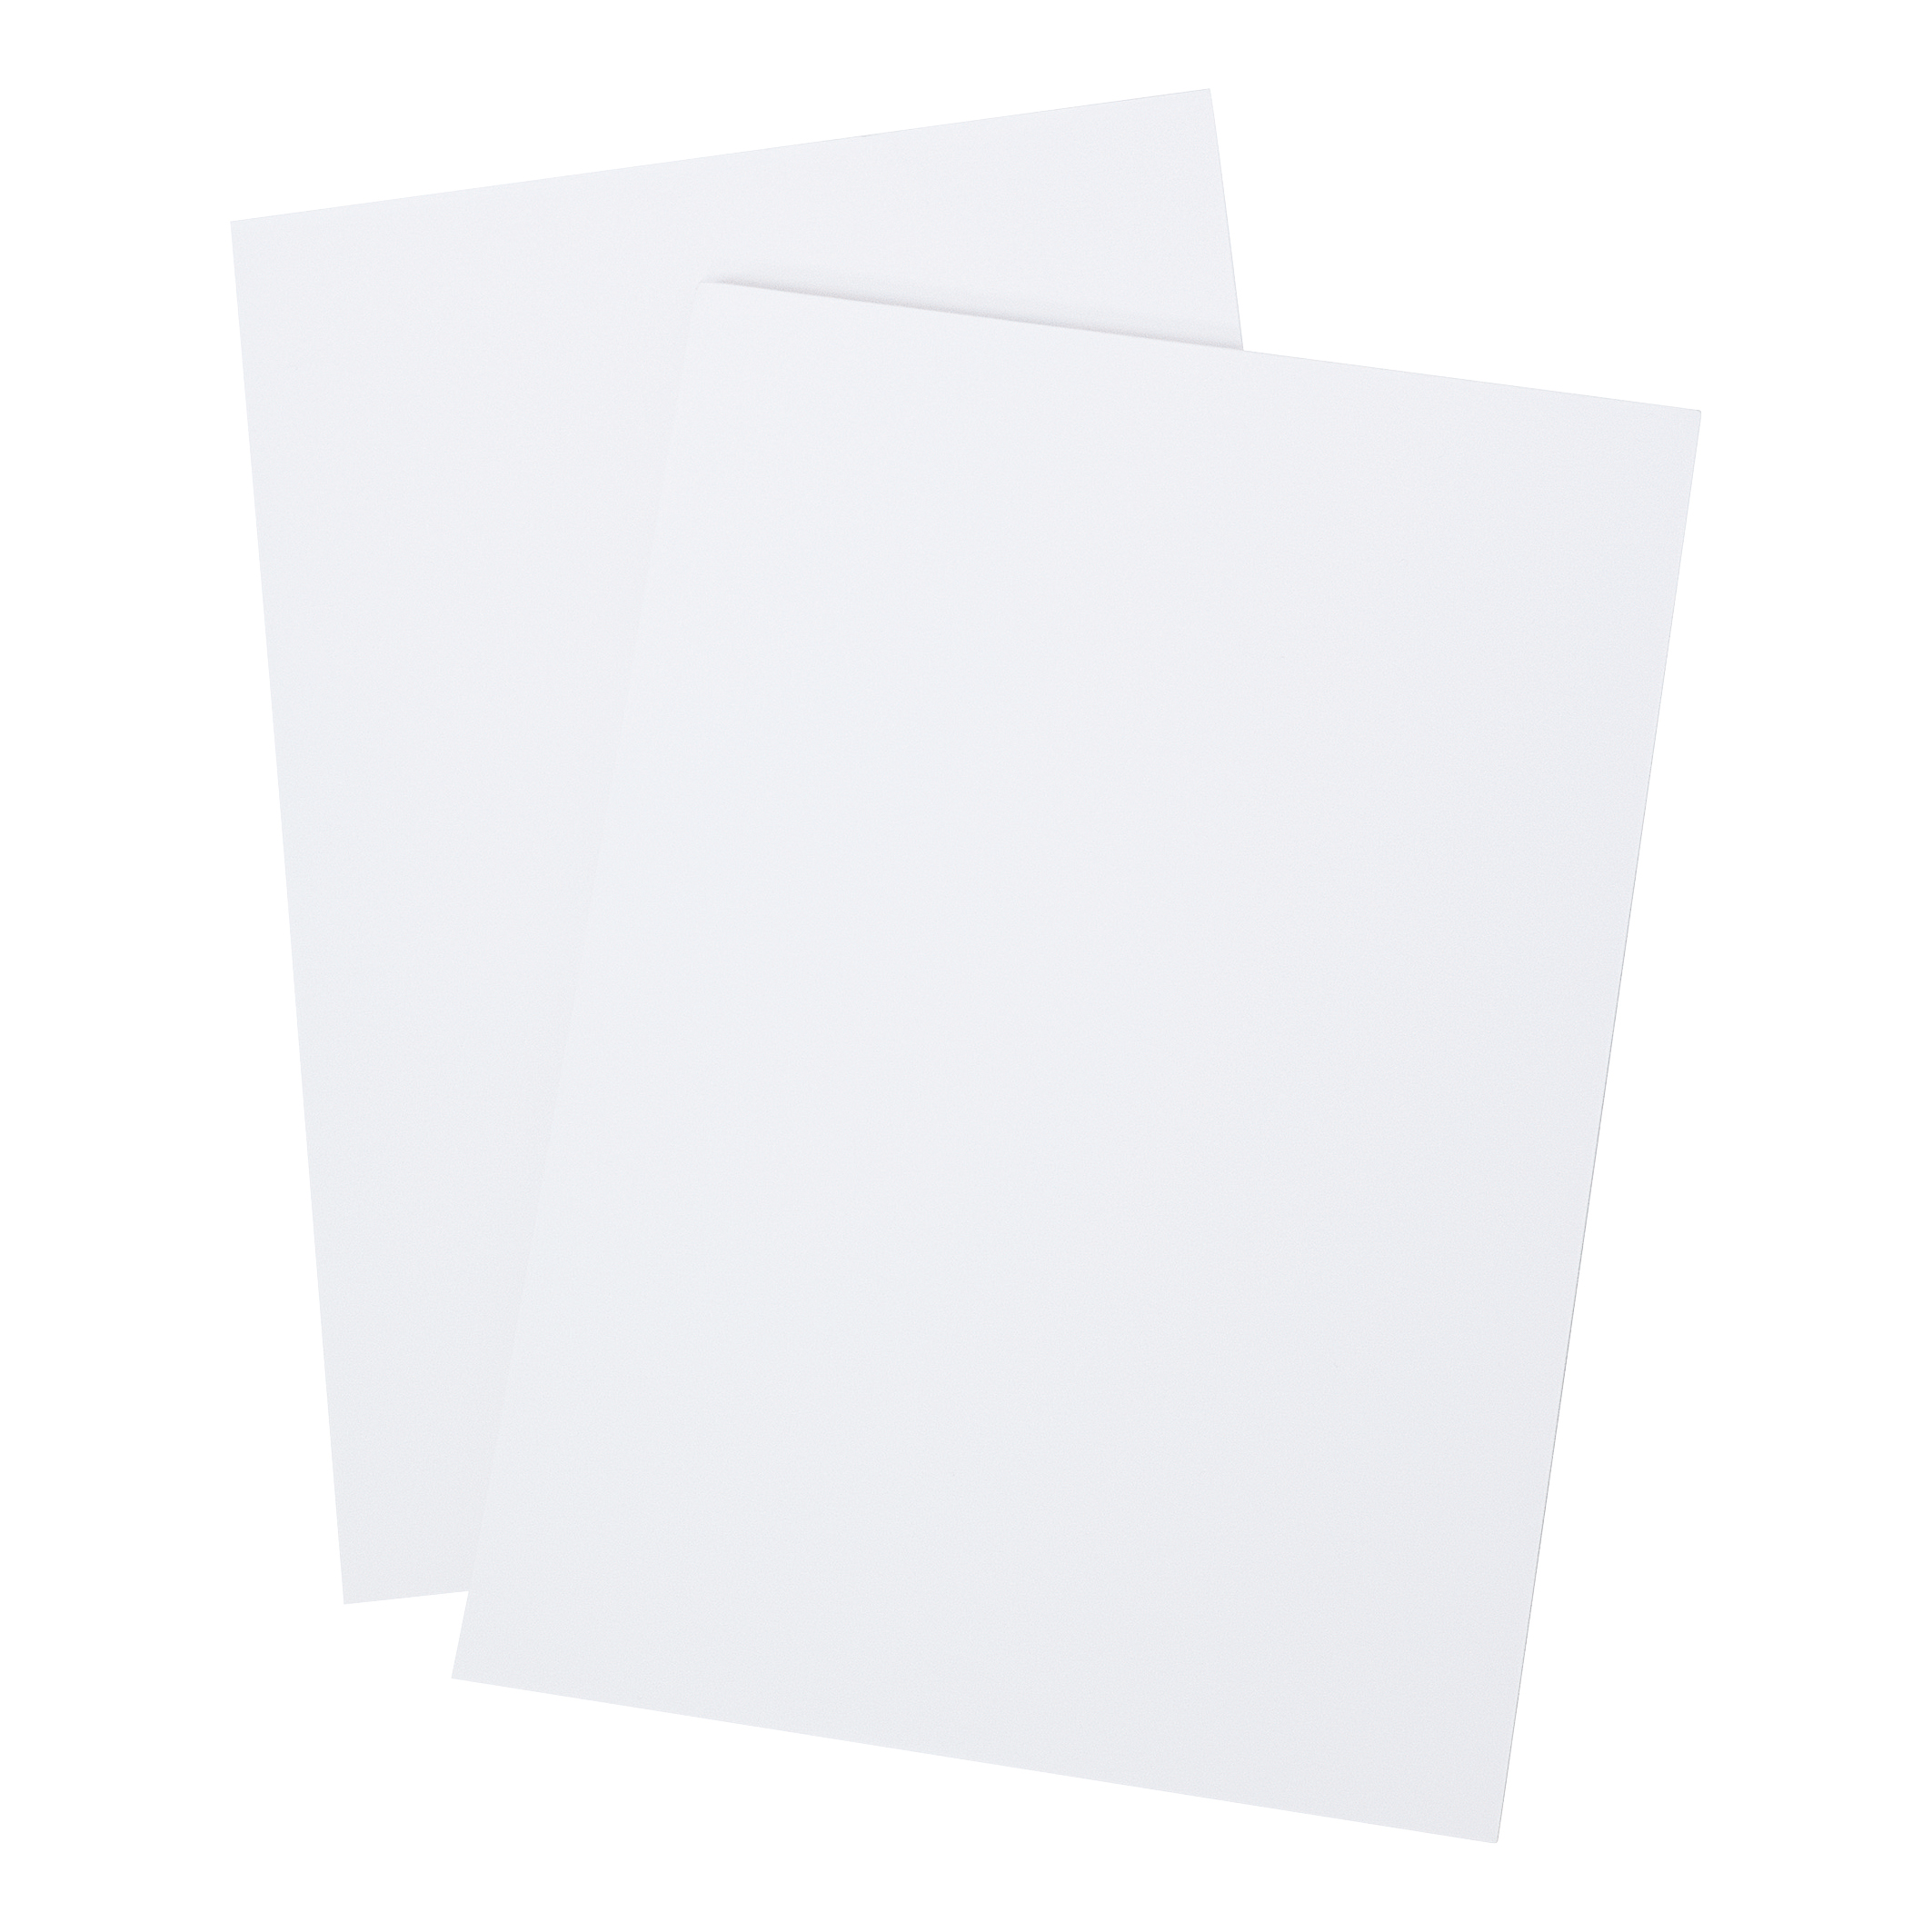 5 Star Office Memo Pad Headbound 60gsm Plain 80 Sheets 160 Pages A4 White Paper [Pack 10]